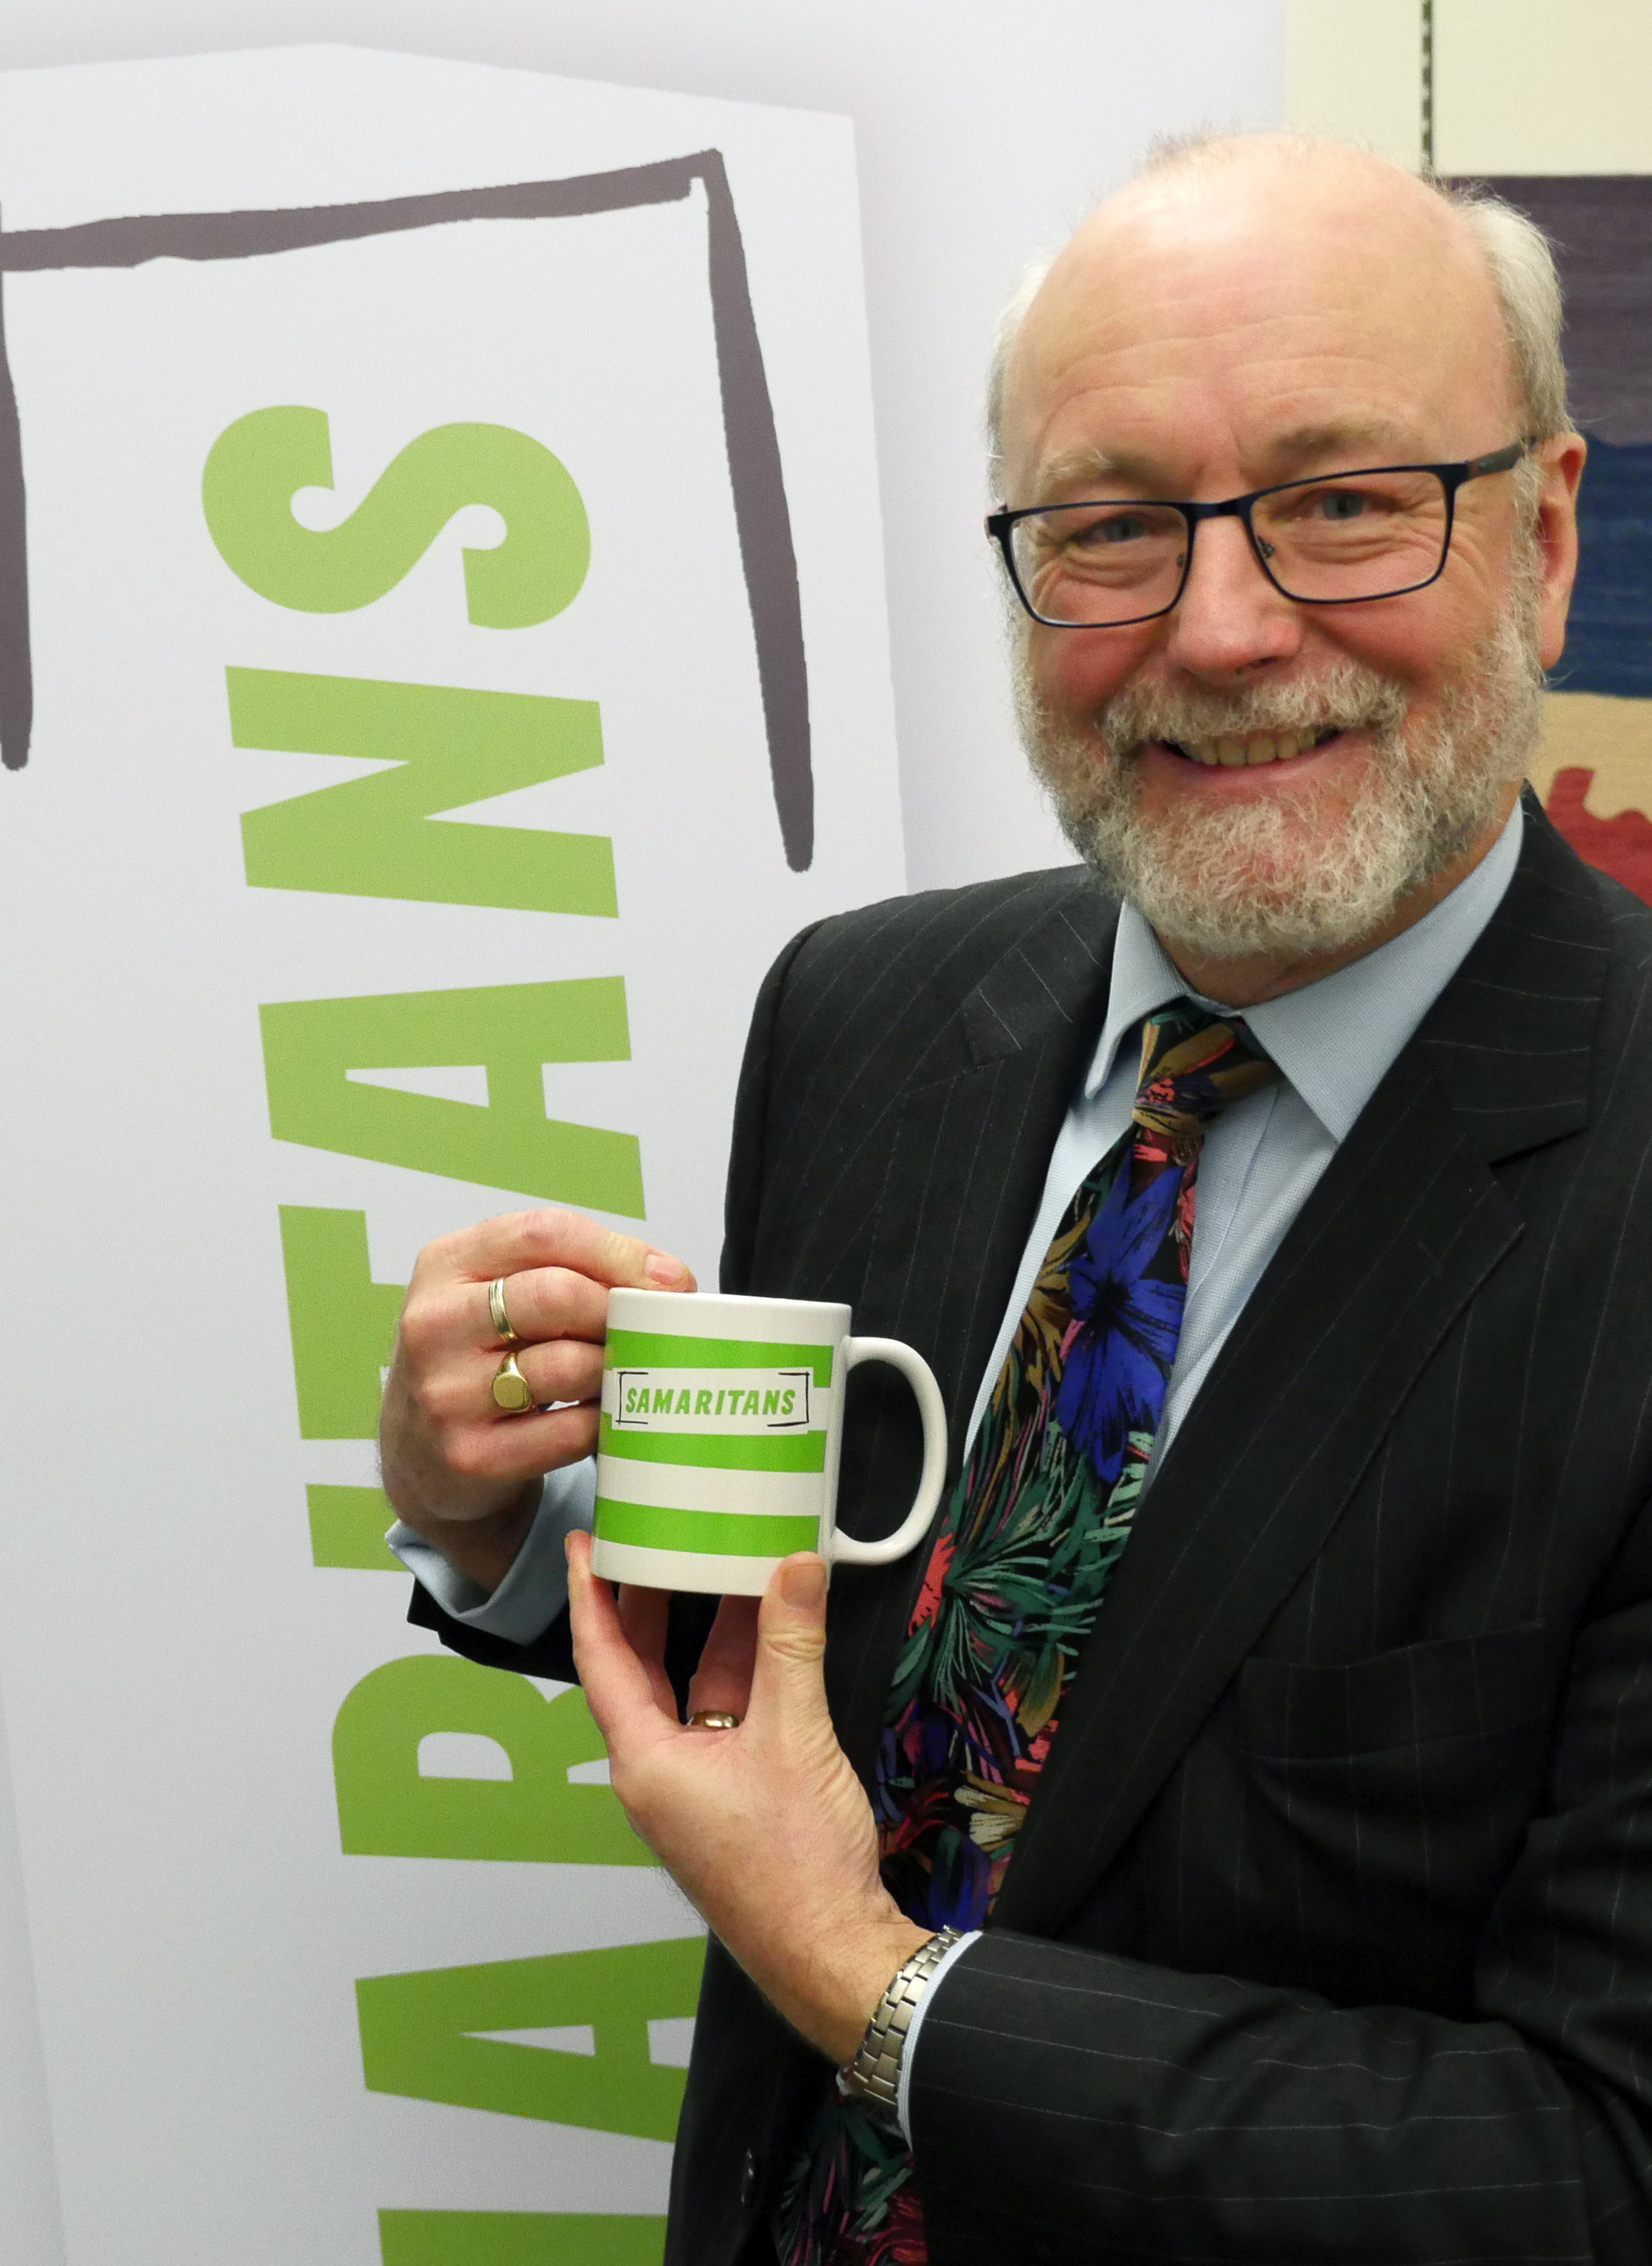 Alex joins Samaritans in Parliament to support Brew Monday